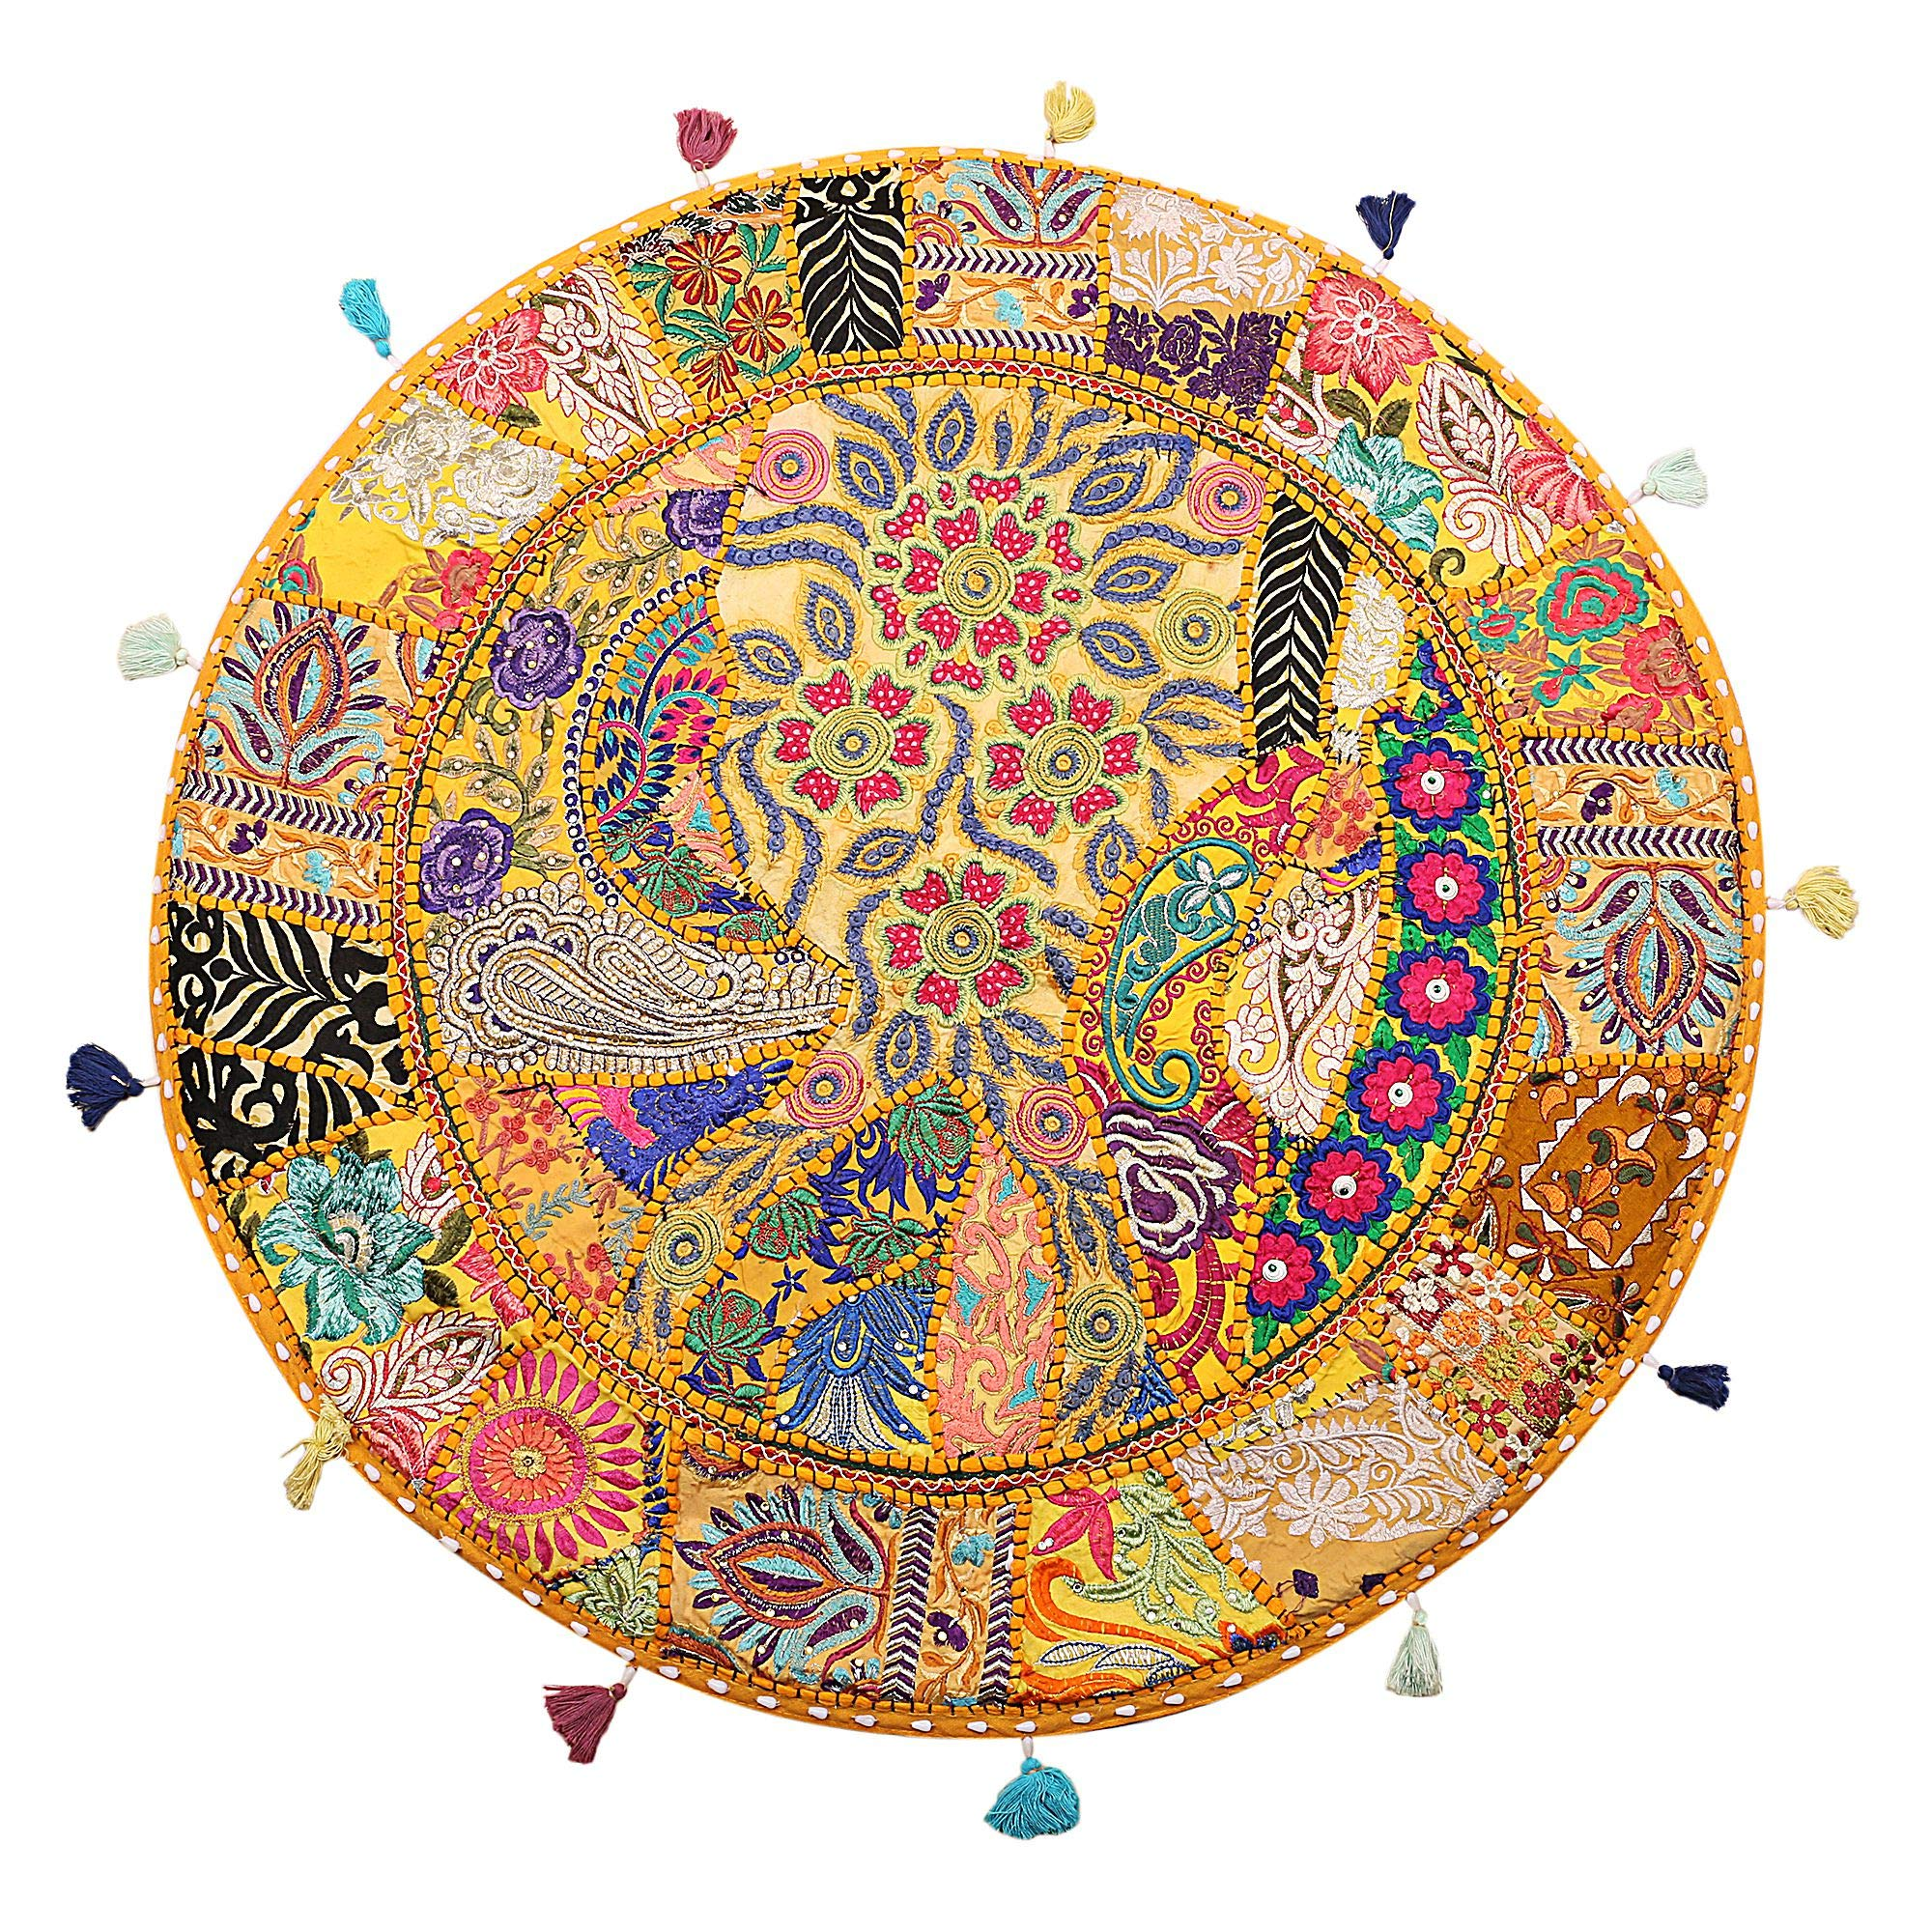 Stylo Culture Round Indian Cotton Large Floor Cushion Seating Cover Vintage Embroidered Patchwork Yellow 32'' Floor Pillow Case